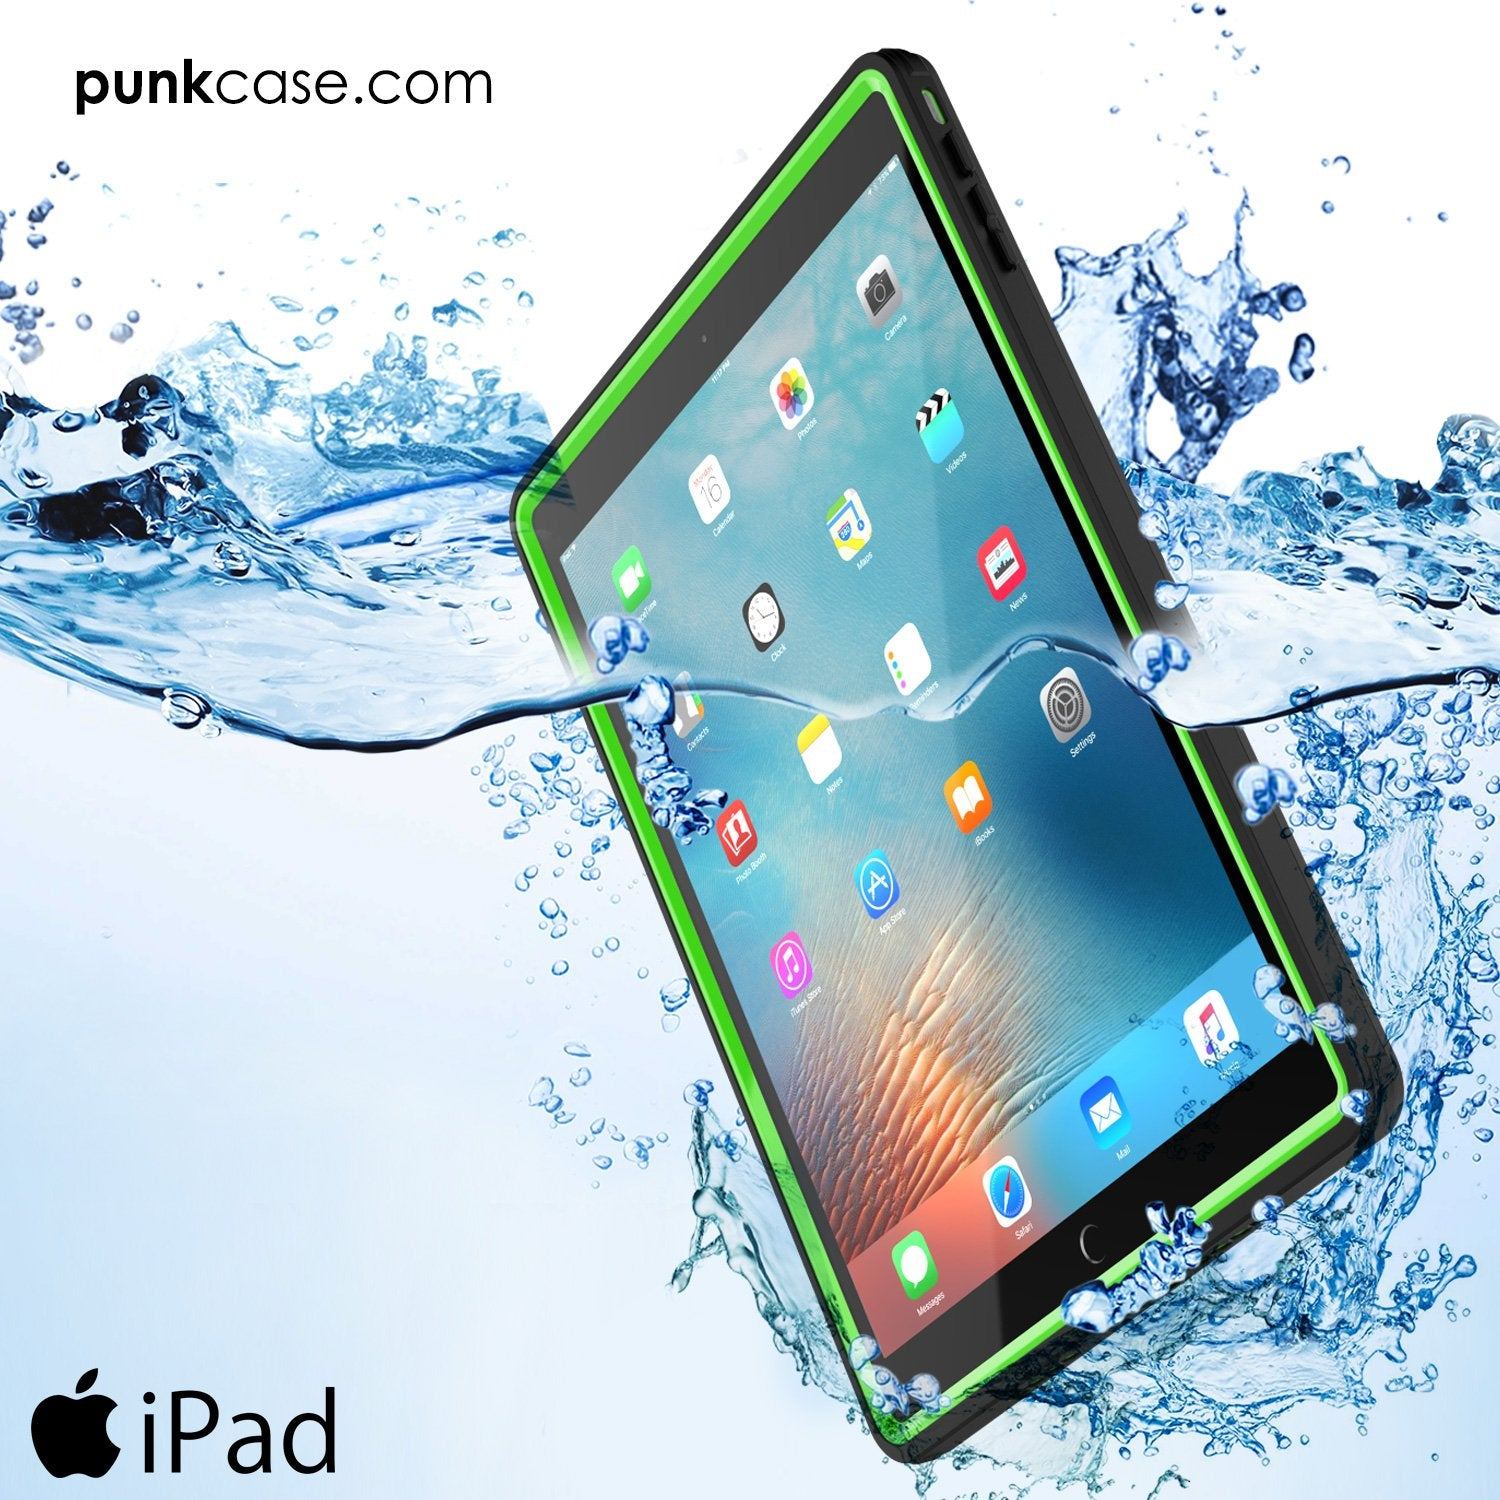 Punkcase iPad Pro 9.7 Case [CRYSTAL Series], Waterproof, Ultra-Thin Cover [Shockproof] [Dustproof] with Built-in Screen Protector [Light Green]